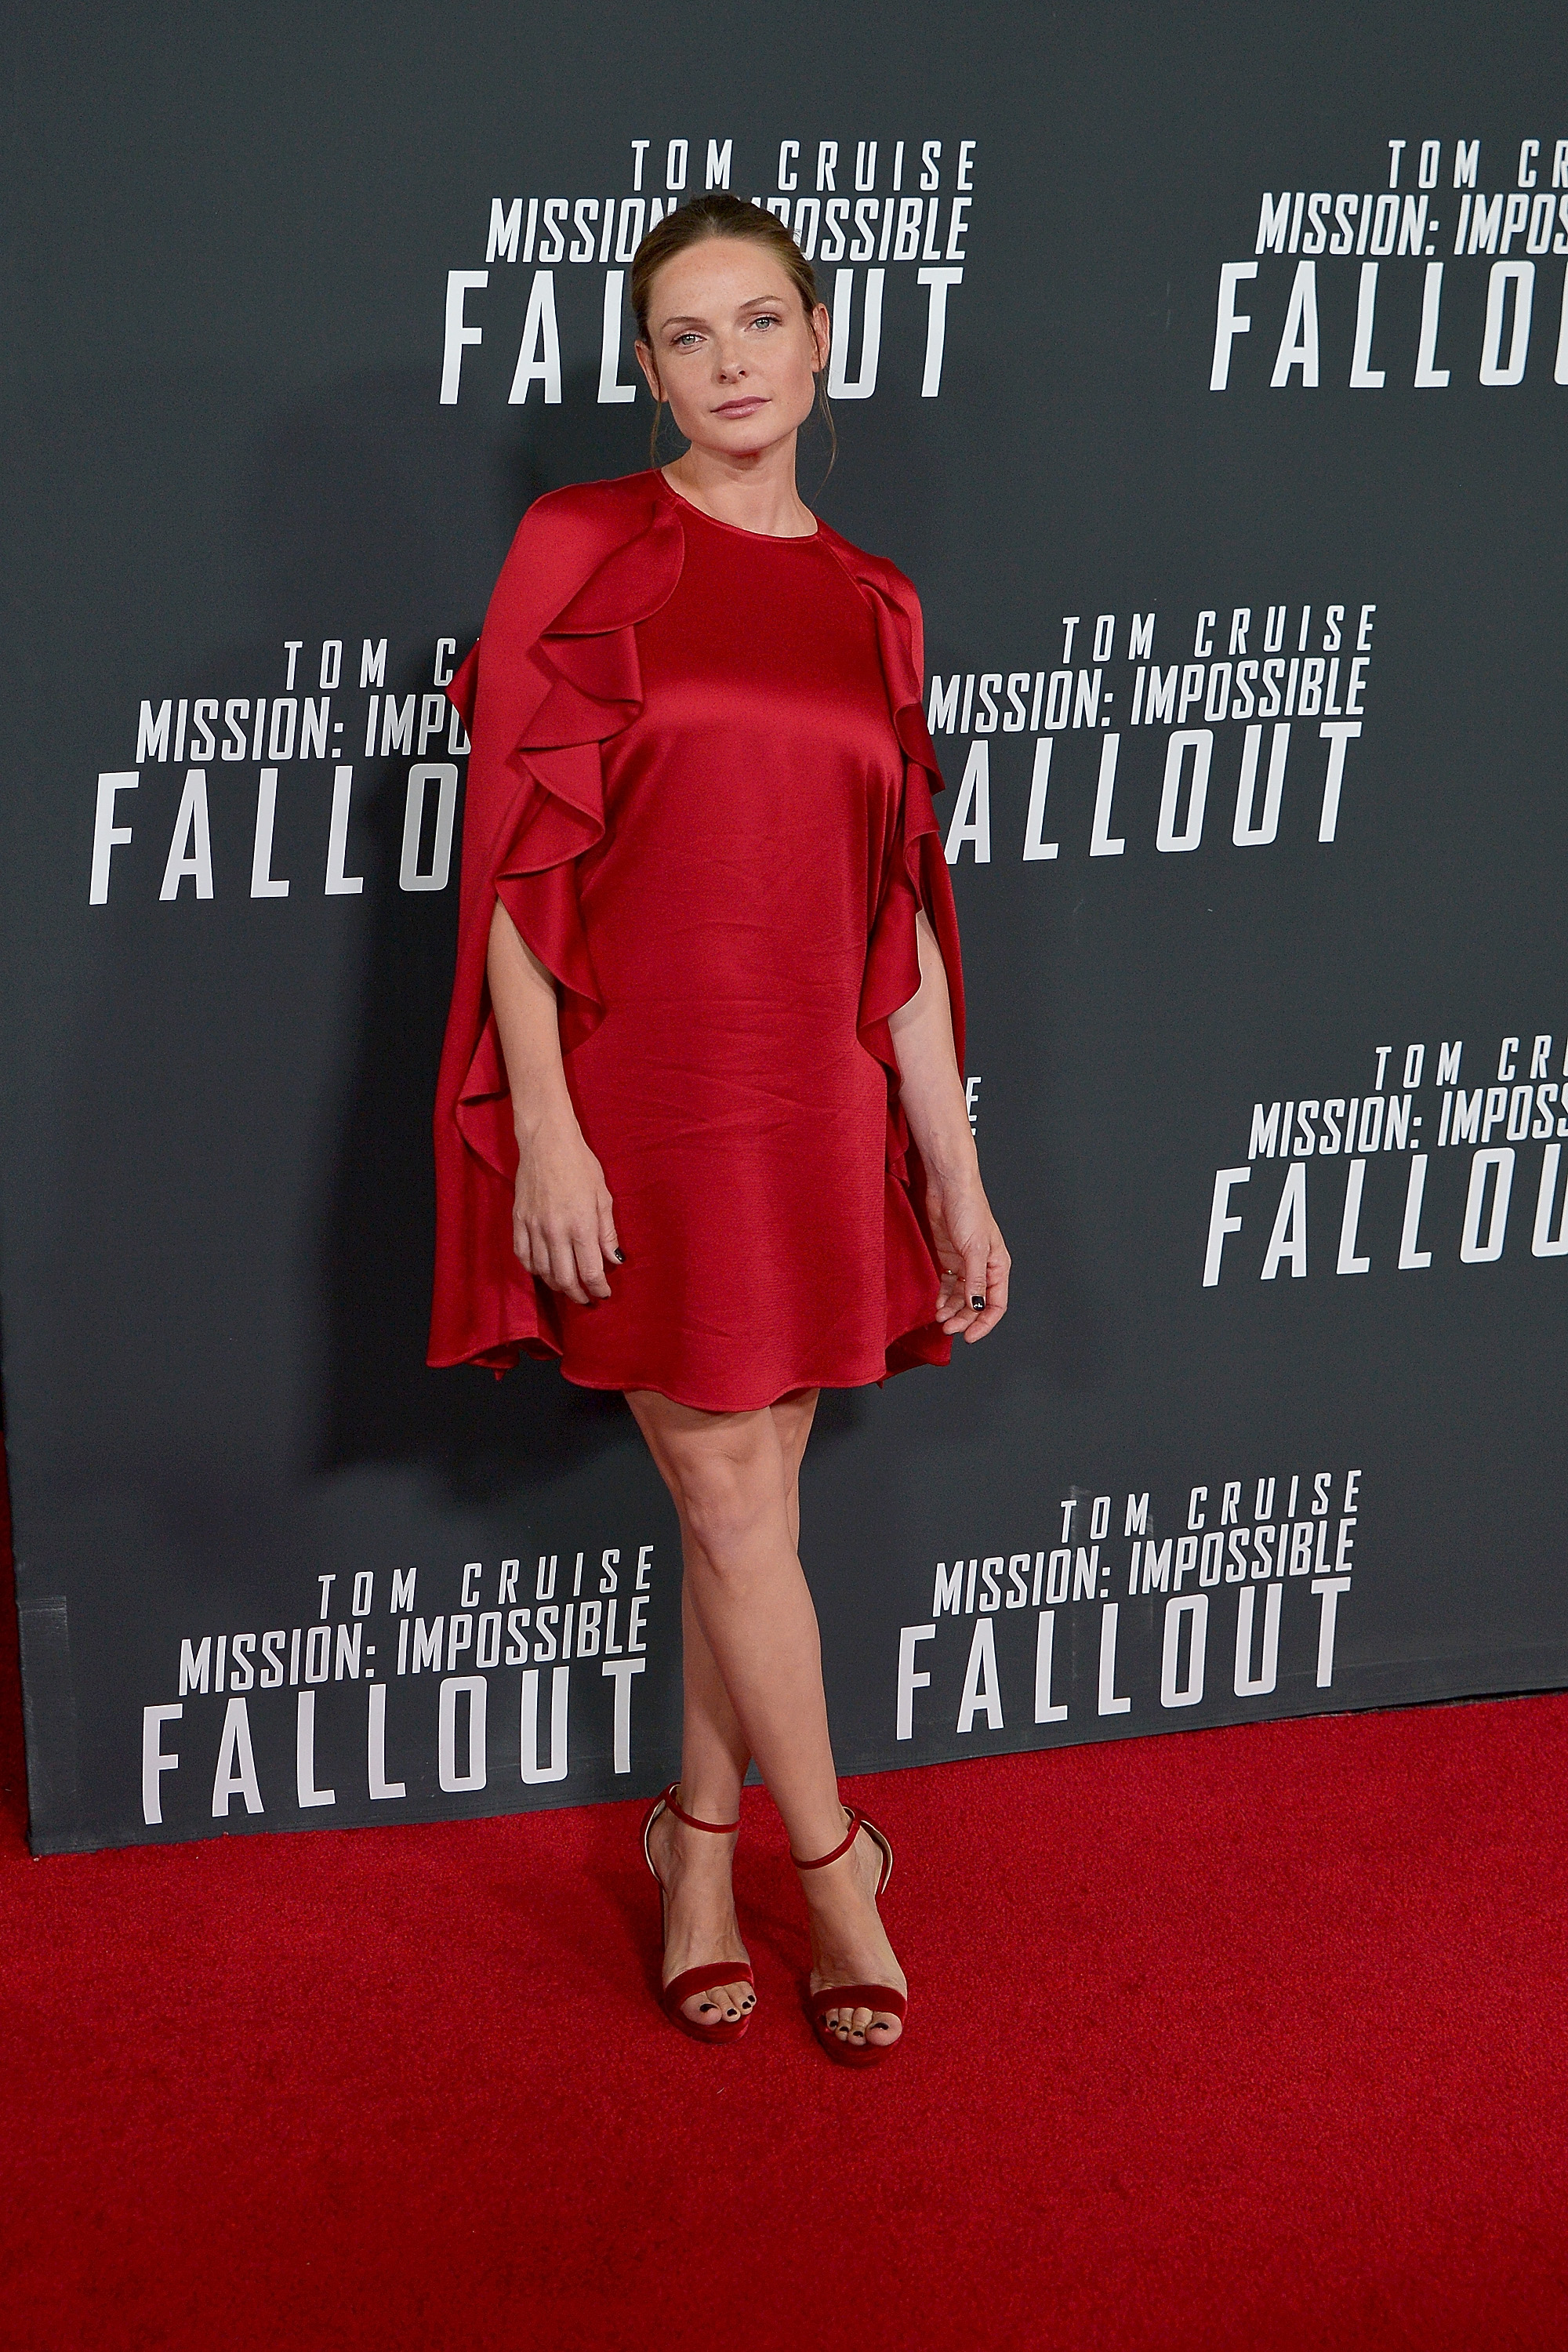 """WASHINGTON, DC - JULY 22: Rebecca Ferguson attends the U.S. Premiere of """"Mission: Impossible - Fallout"""" at Smithsonian's National Air and Space Museum on July 22, 2018 in Washington, DC. (Photo by Shannon Finney/Getty Images)"""